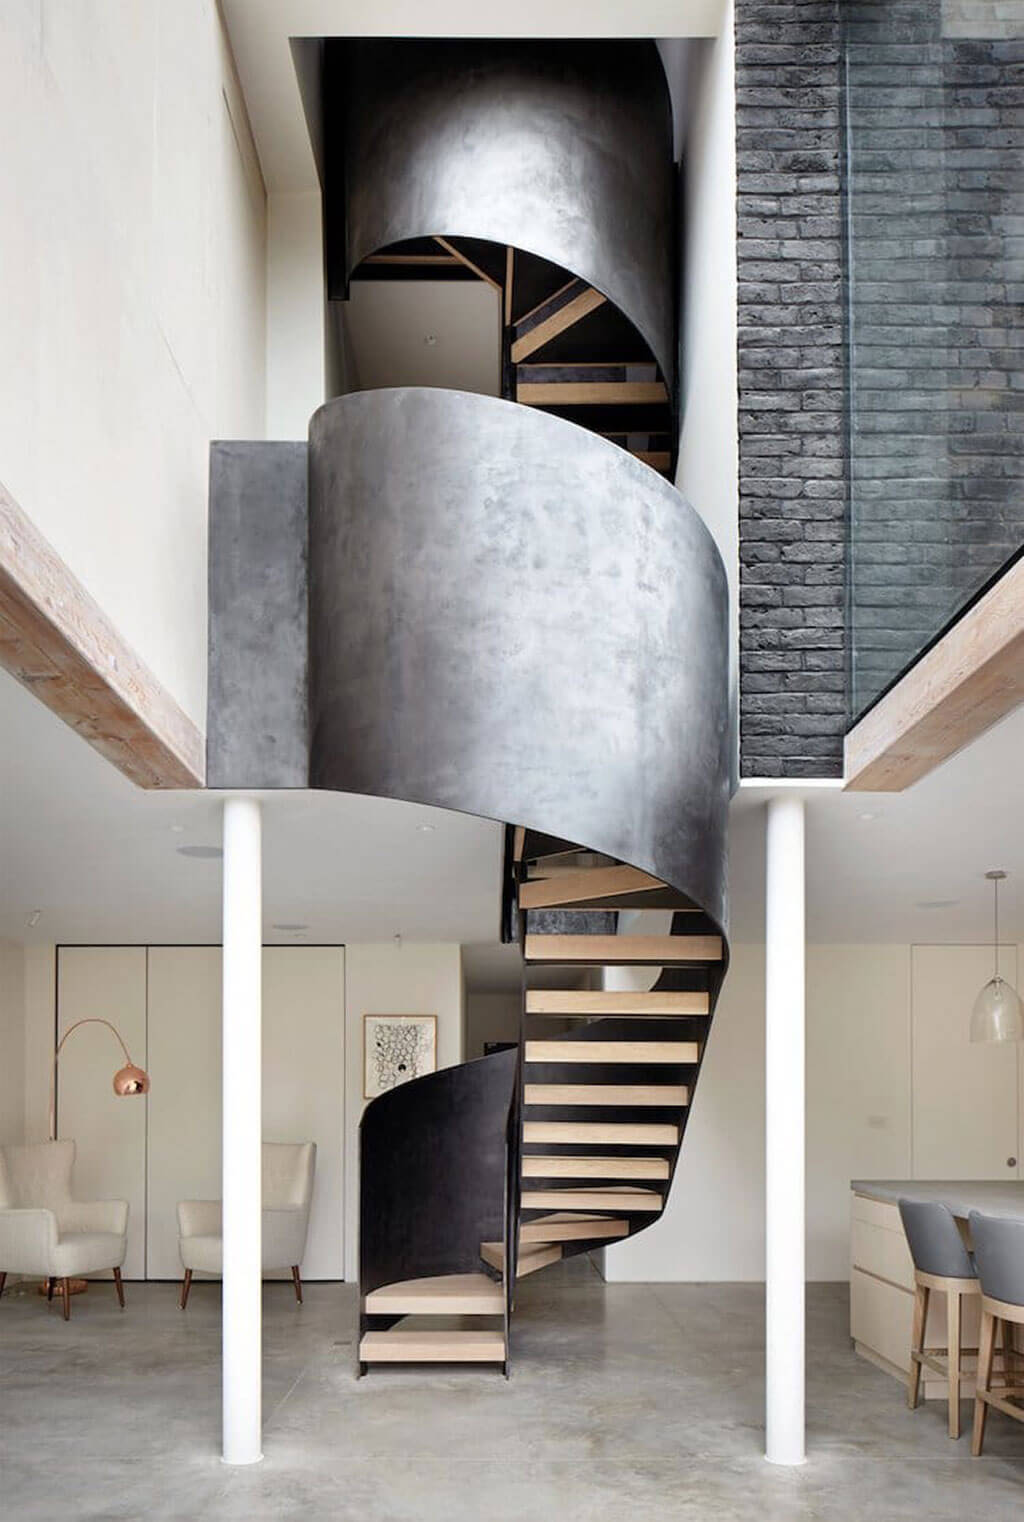 Stair designs with a (literal) twist